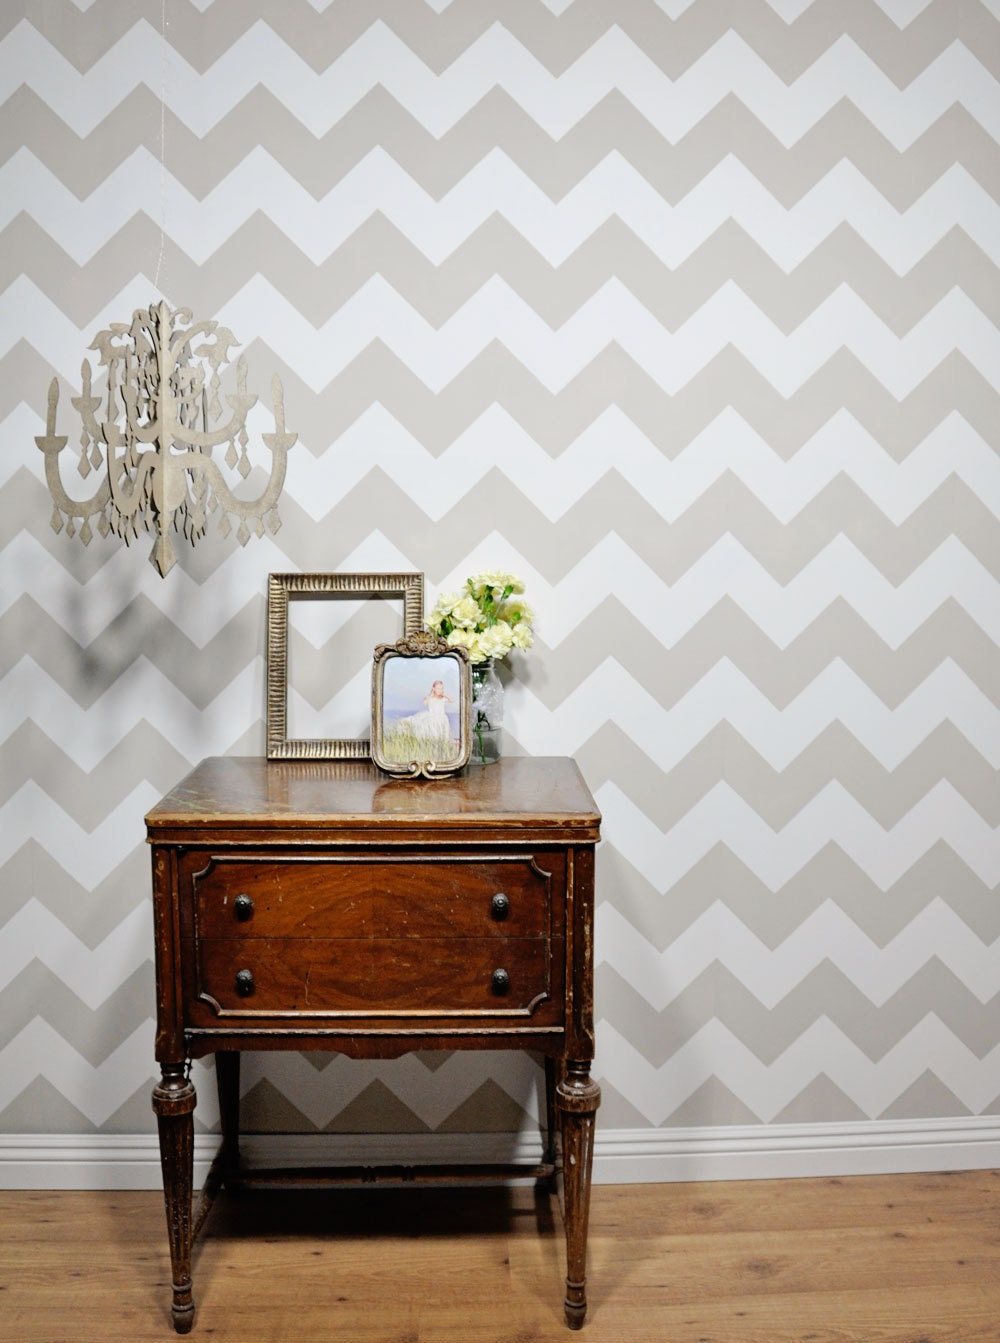 chevron template for walls - chevron wall stencil reusable